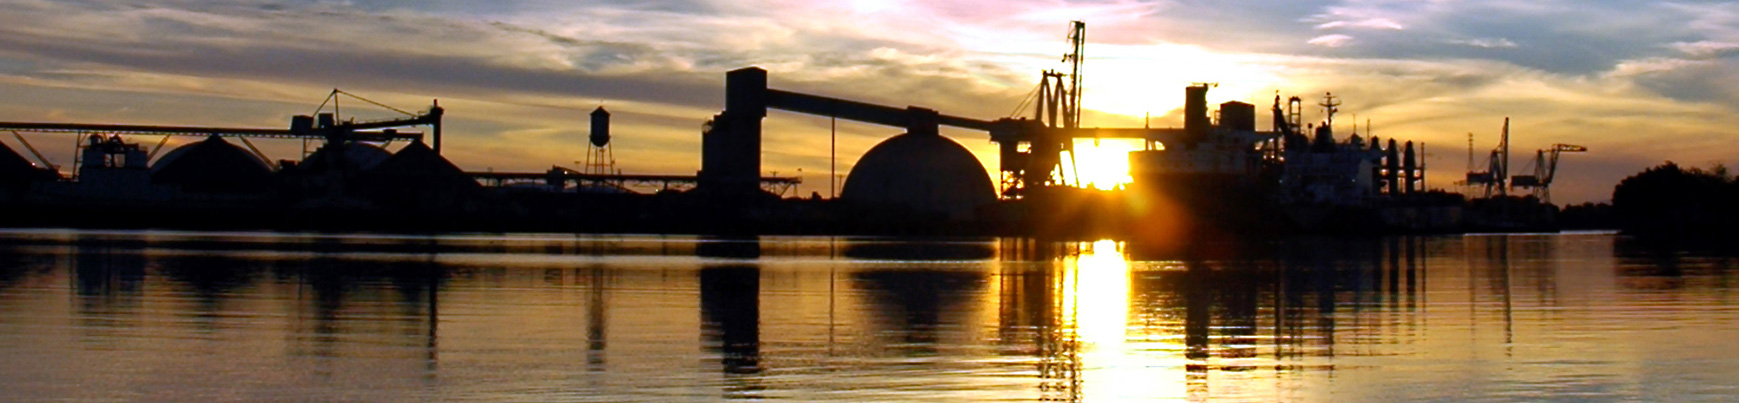 Sun setting over the Port of Stockton